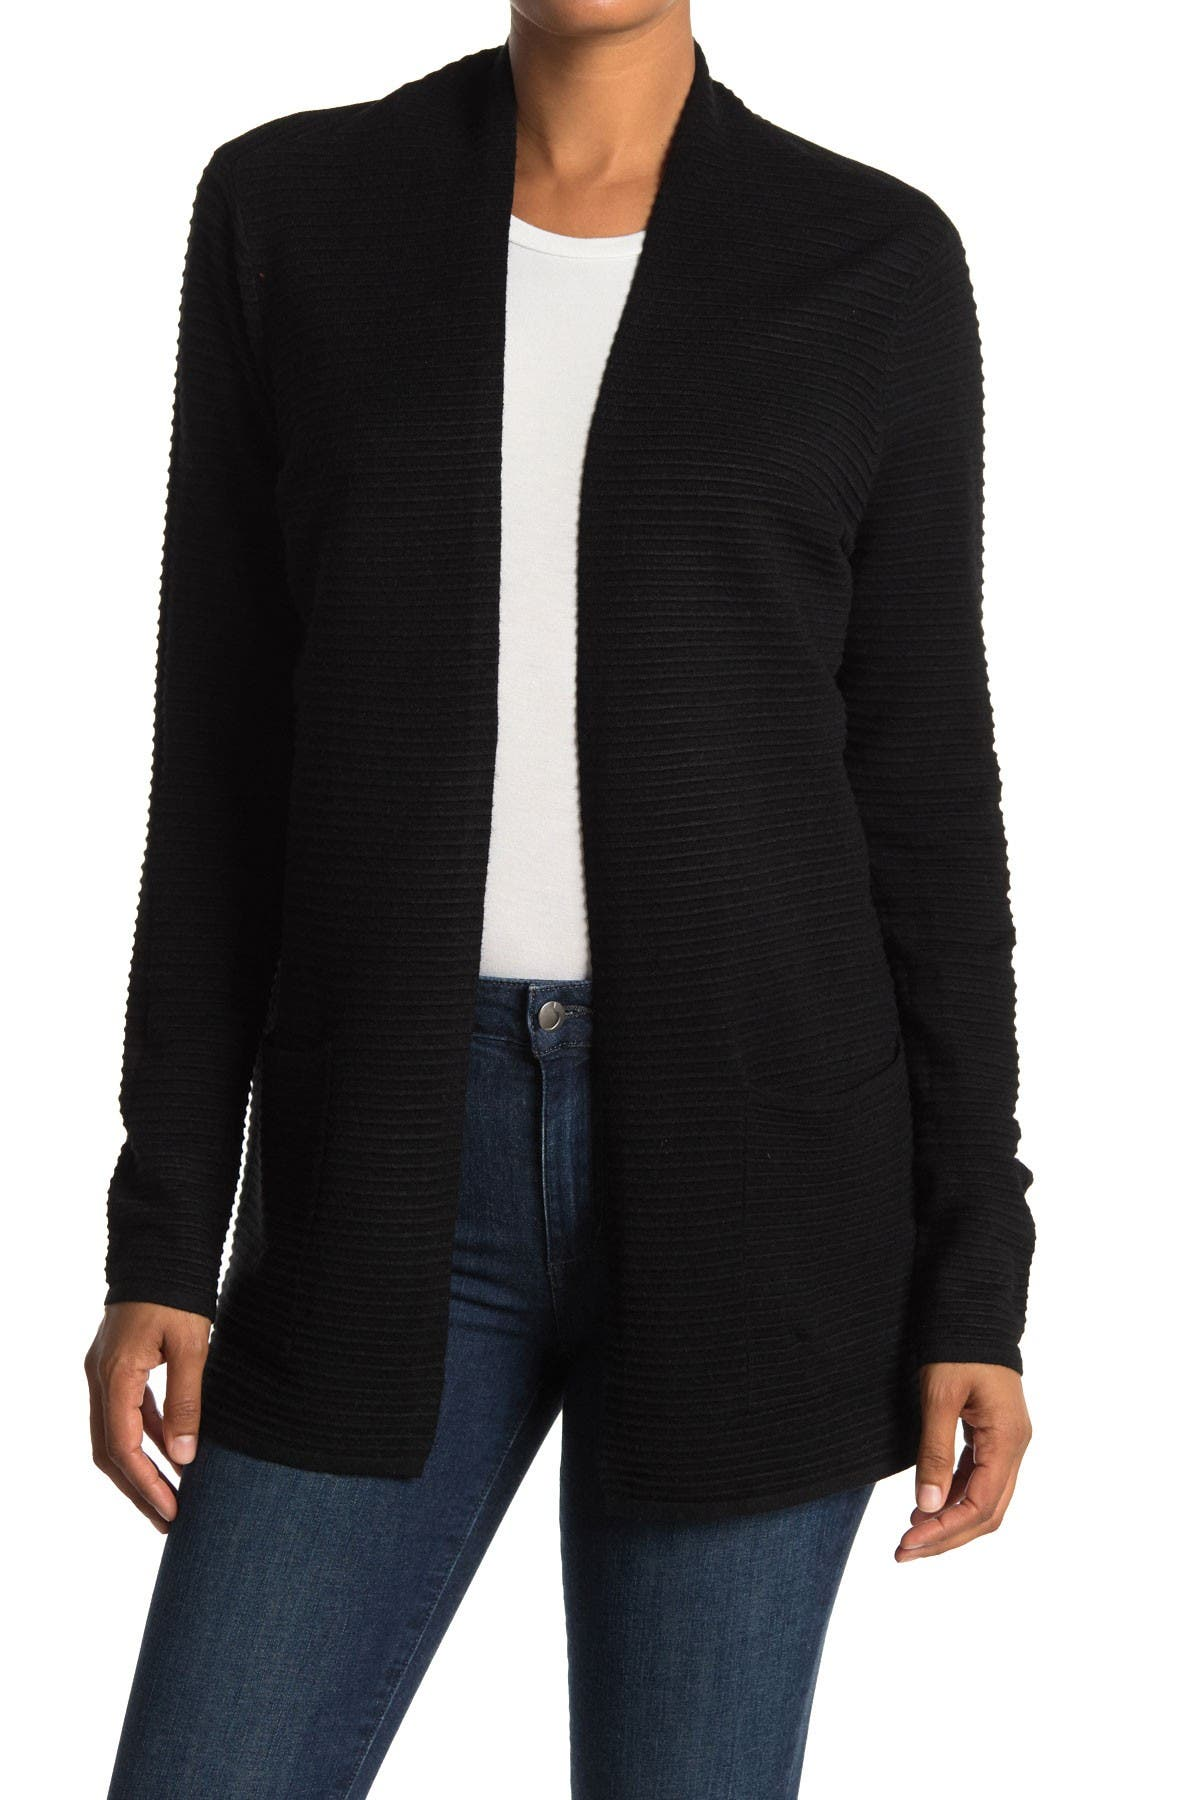 Image of Devotion By Cyrus Ottoman Ribbed Open Cardigan